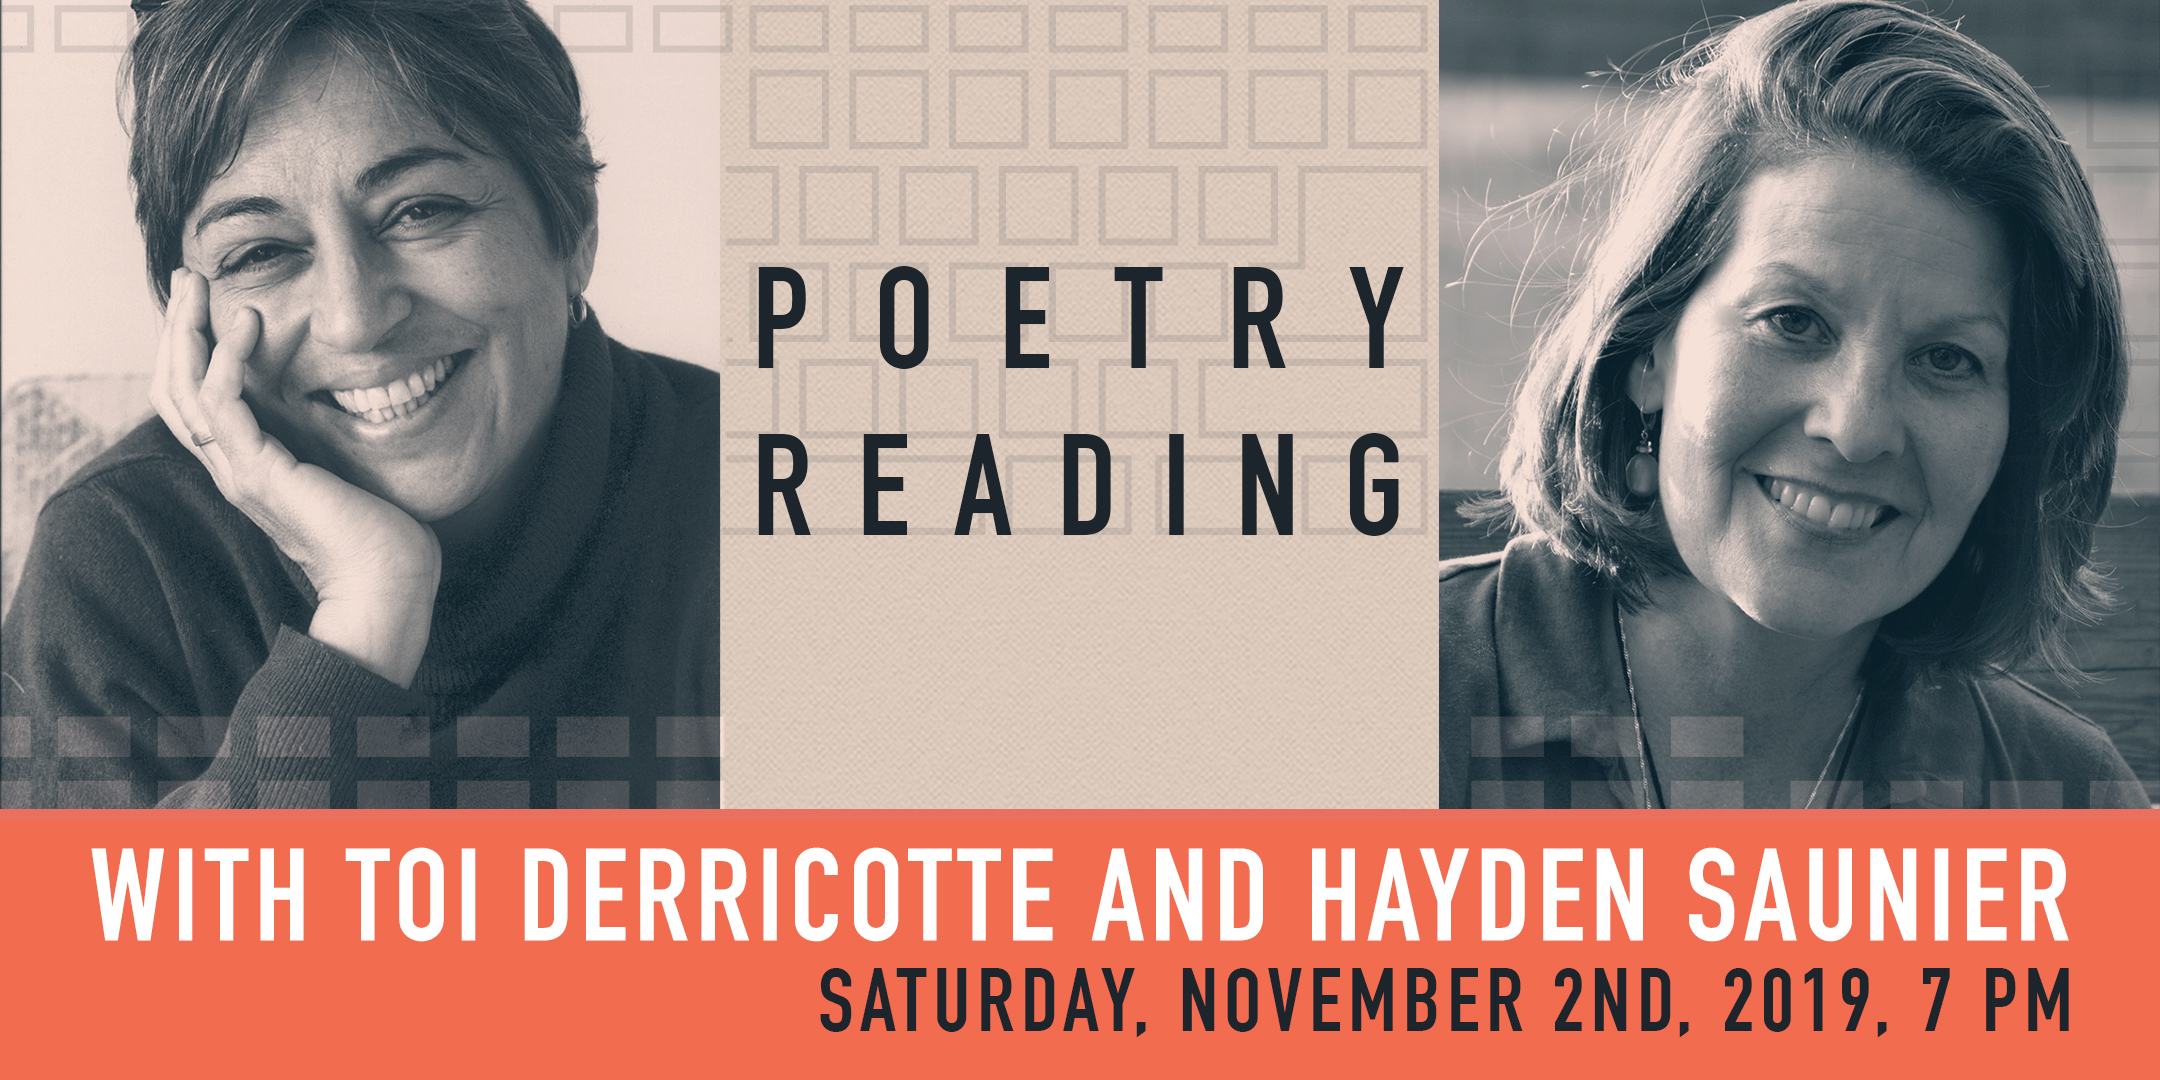 Poetry Reading with Toi Derricotte and Hayden Saunier. @ ArtYard's Theater | Frenchtown | New Jersey | United States